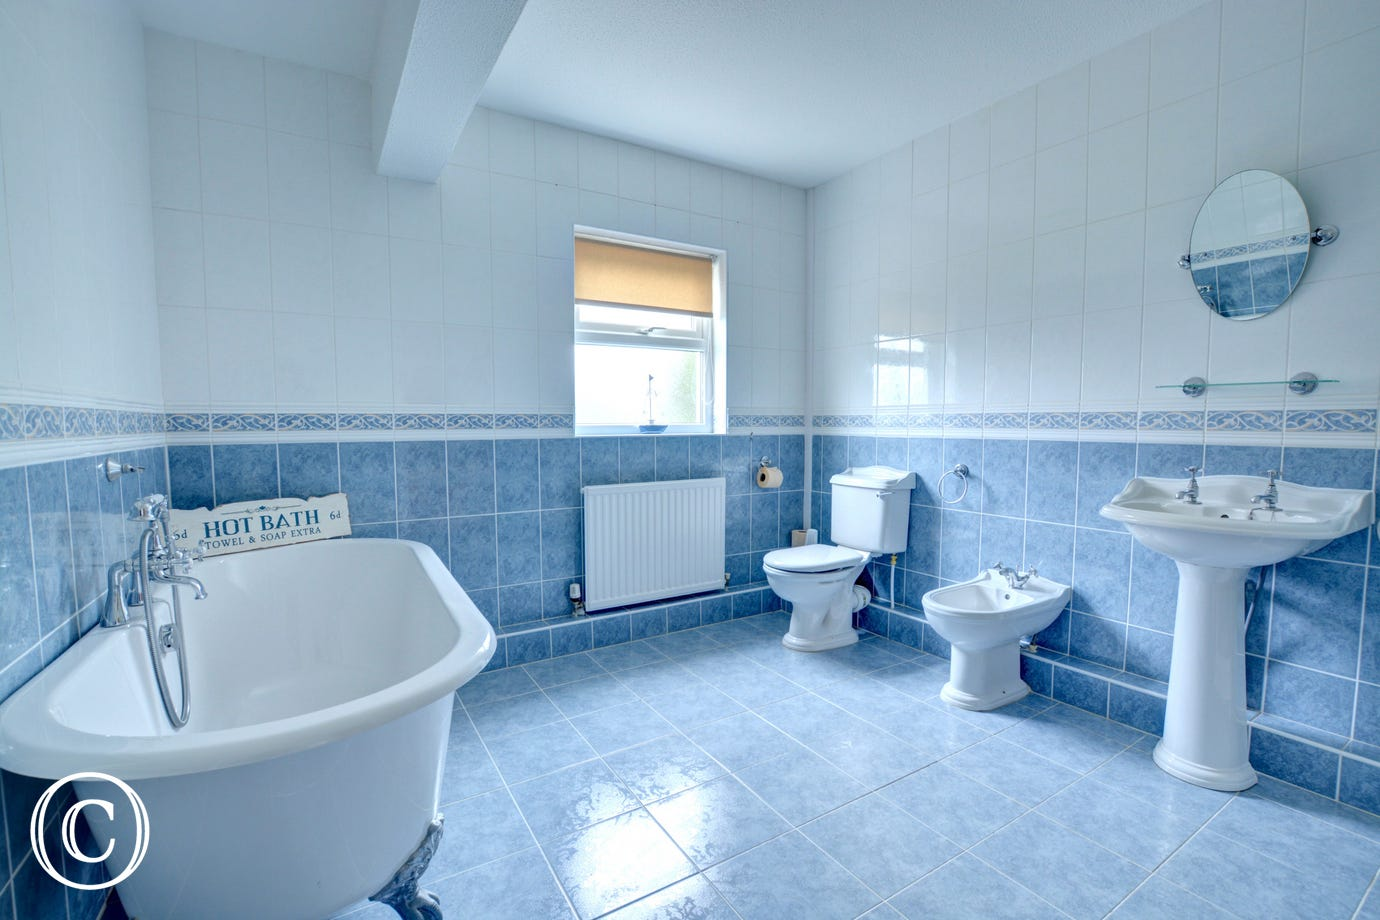 Bathroom with roll top bath, toilet, bidet, wash basin and shower cubicle (out of shot)